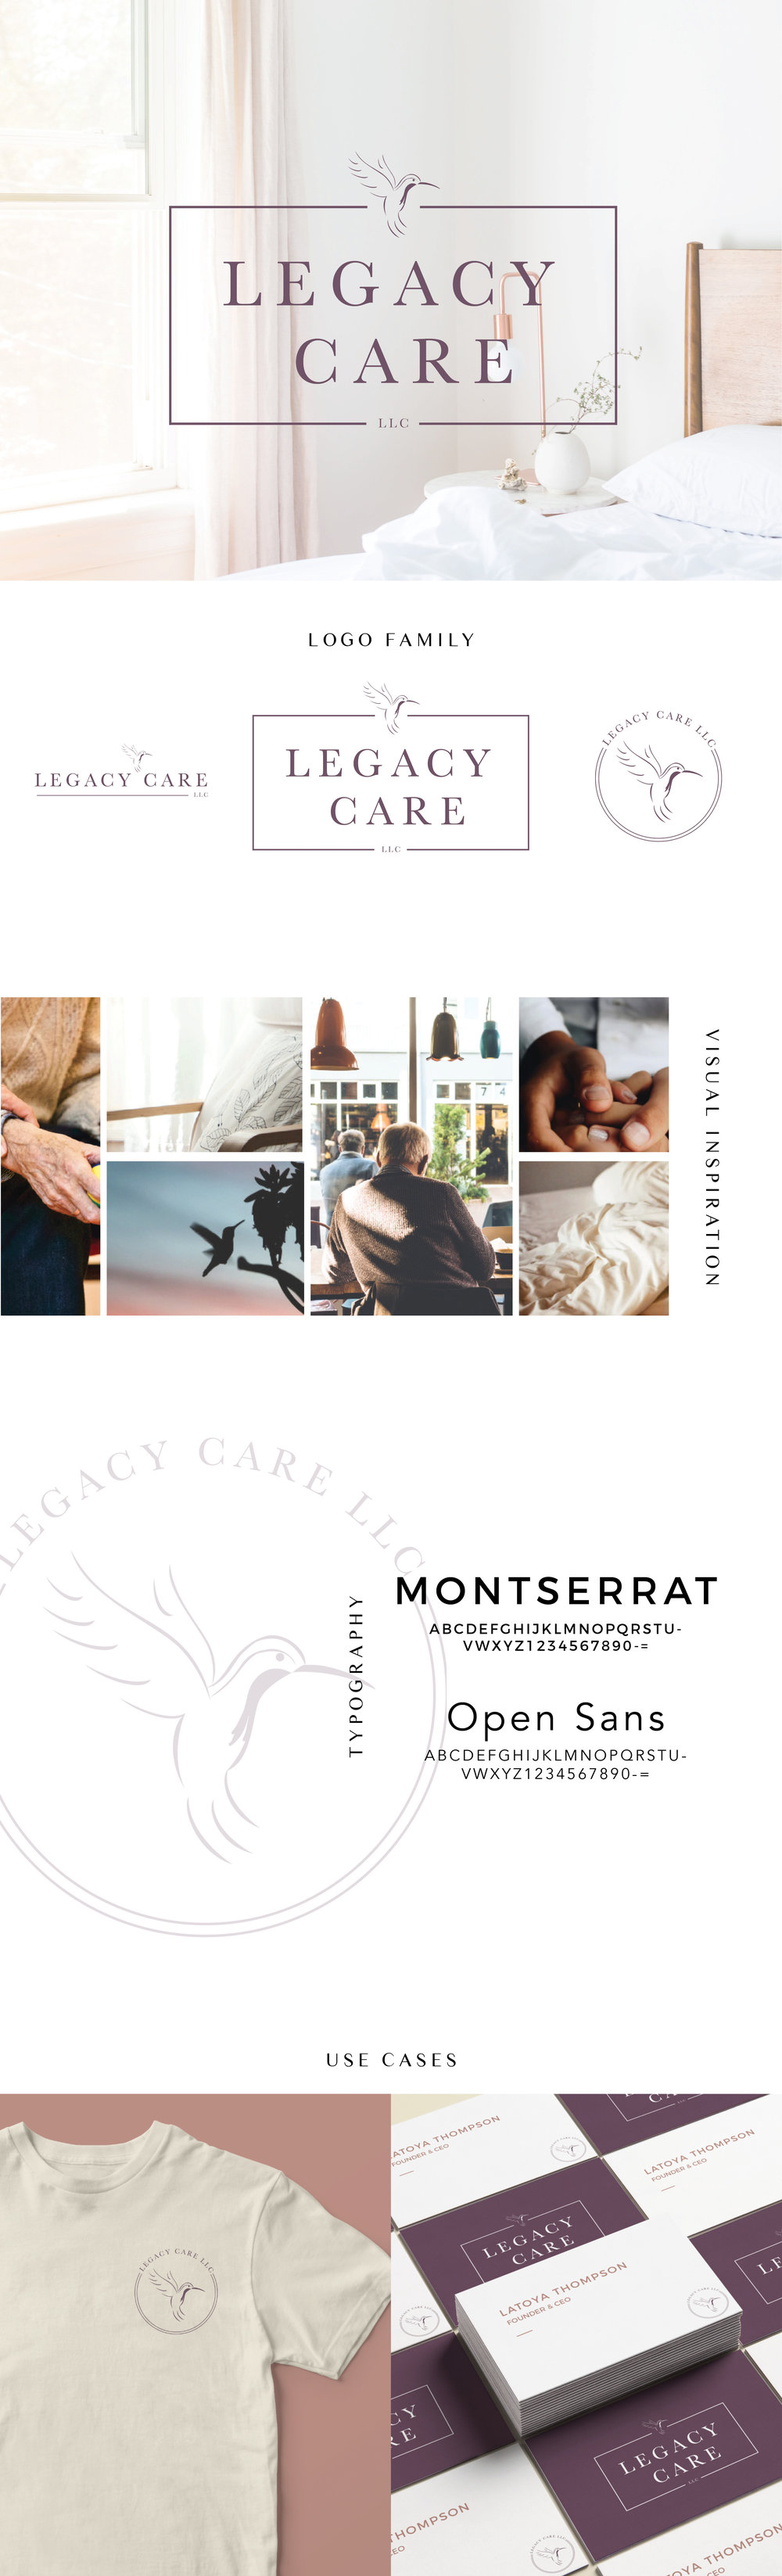 Legacy Care LLC Home Care | Brand Identity and Web Design